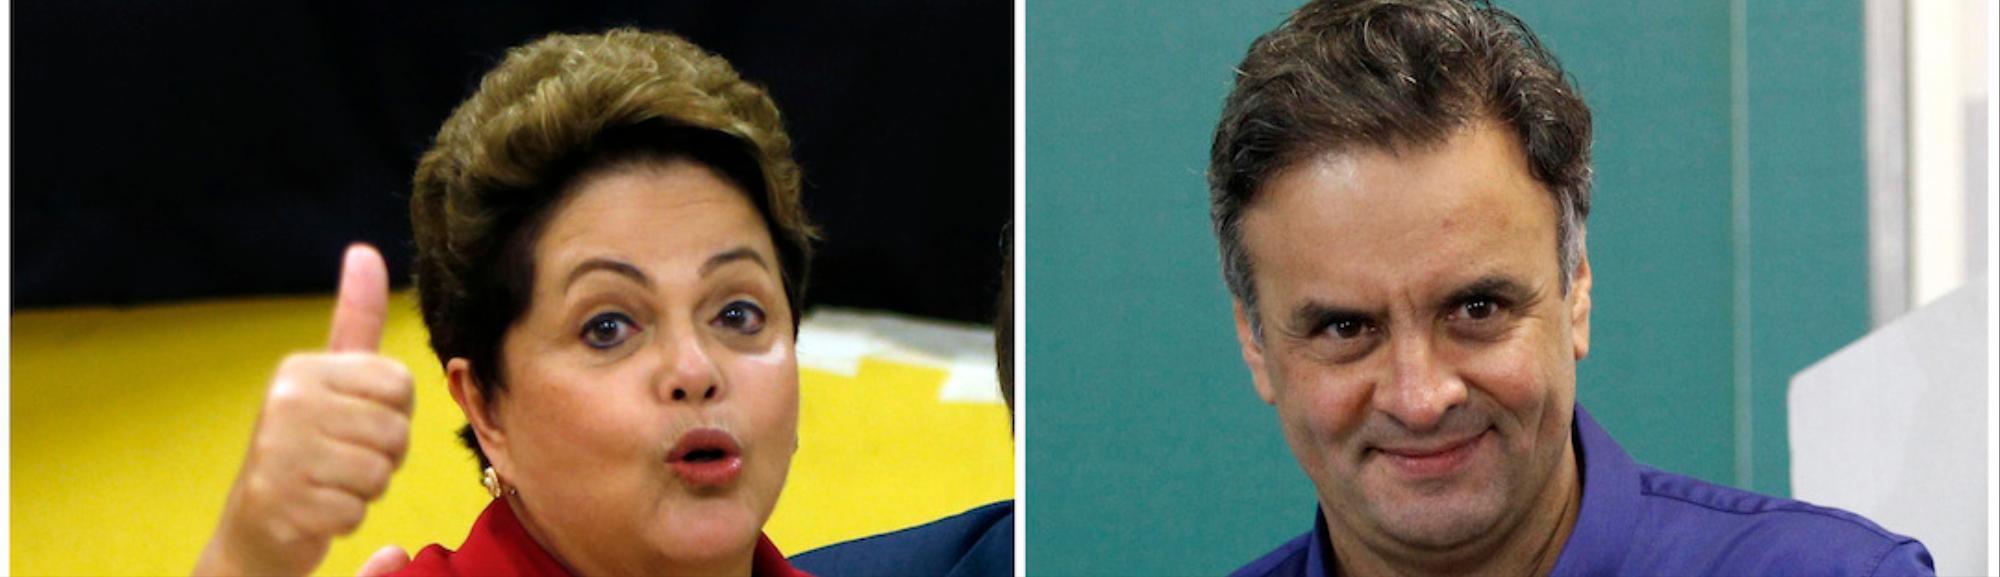 Brazil's Presidential Run-Off Pits Dilma Rousseff Against Centrist Aecio Neves